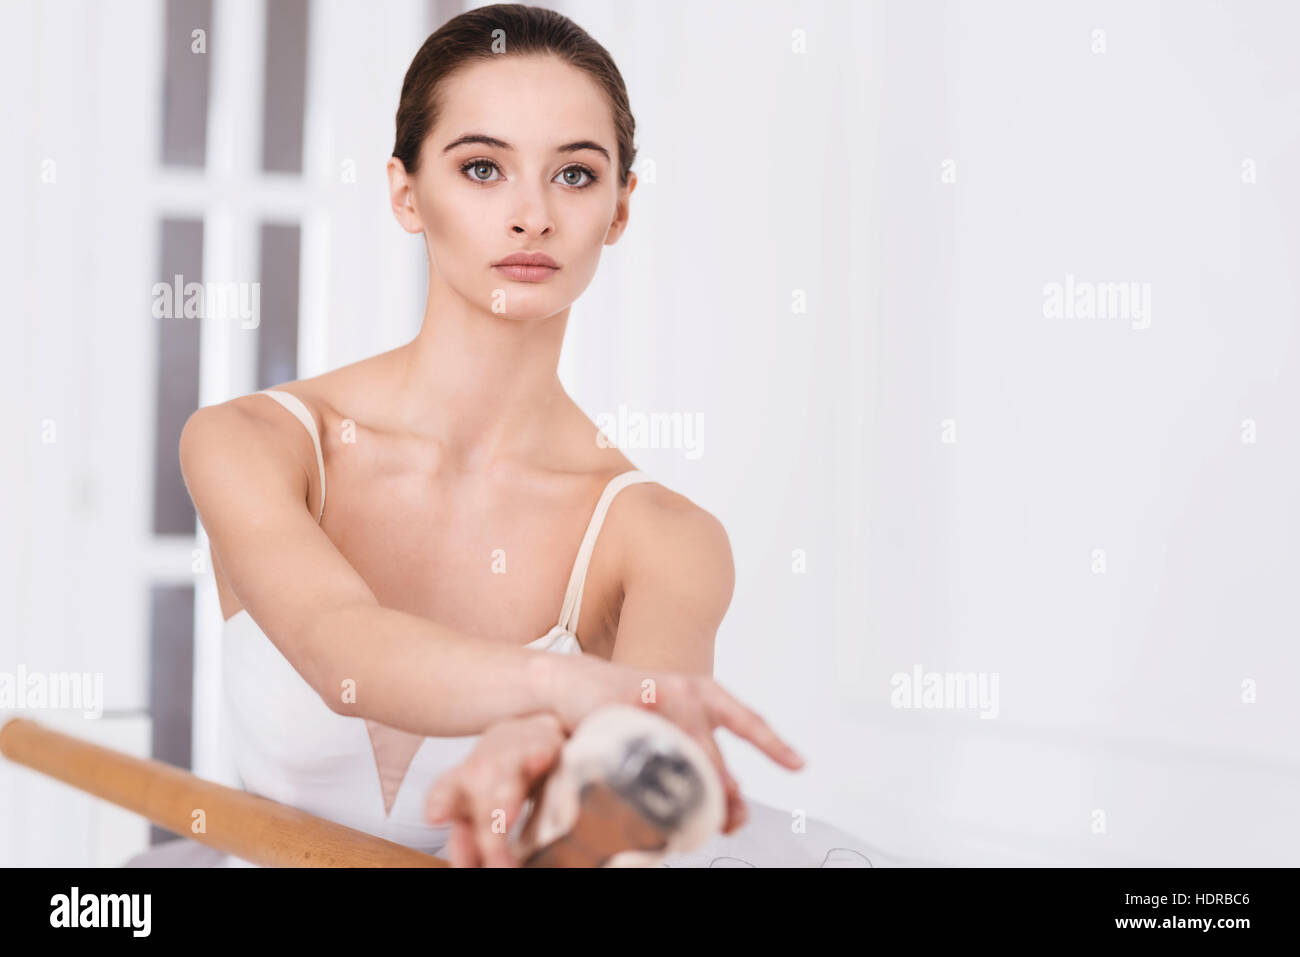 Serious ballet dancer crossed her arms on the leg - Stock Image